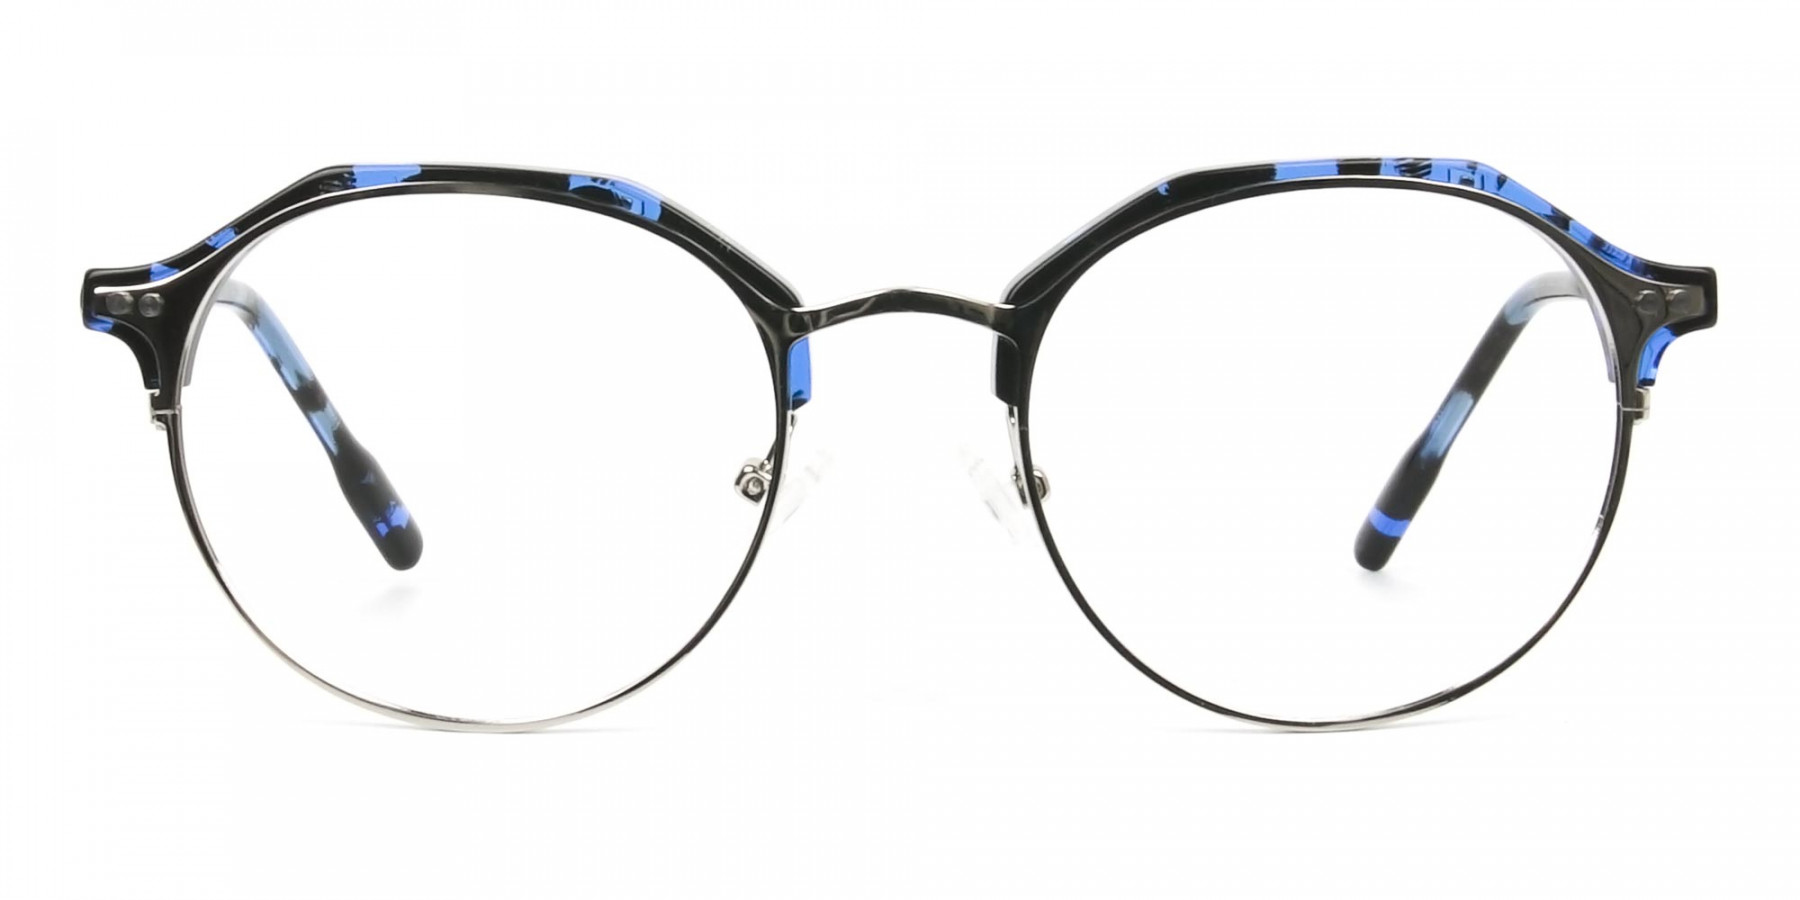 Blue Marble & Silver Weightless Tortoiseshell Glasses  in Mixed material - 1